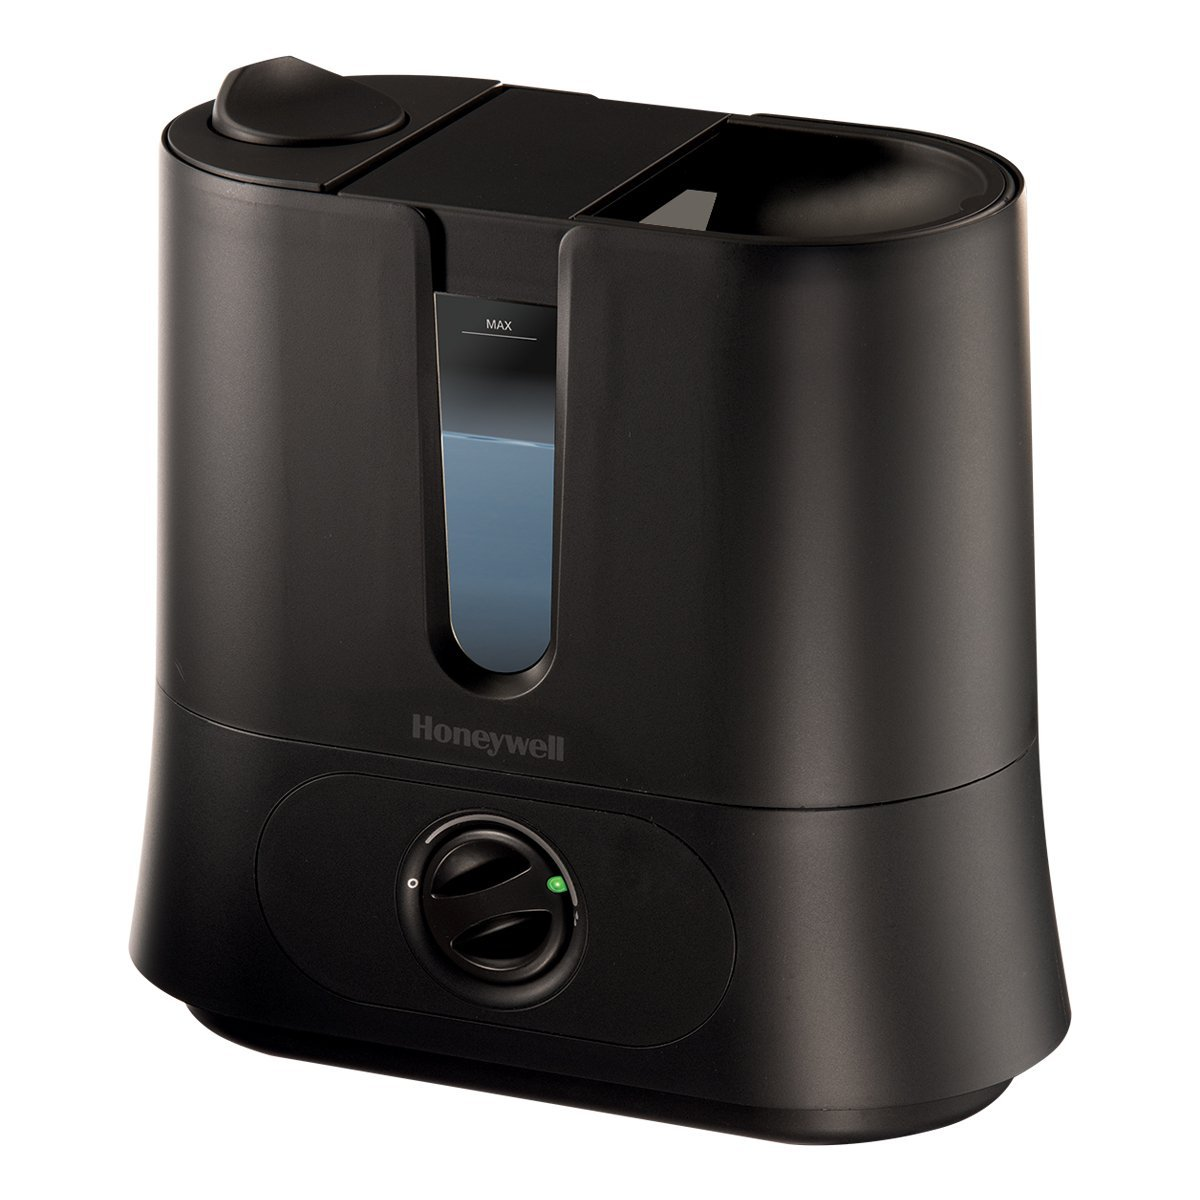 can purchase the Honeywell Cool Moisture Humidifier at amazon.com #50697B